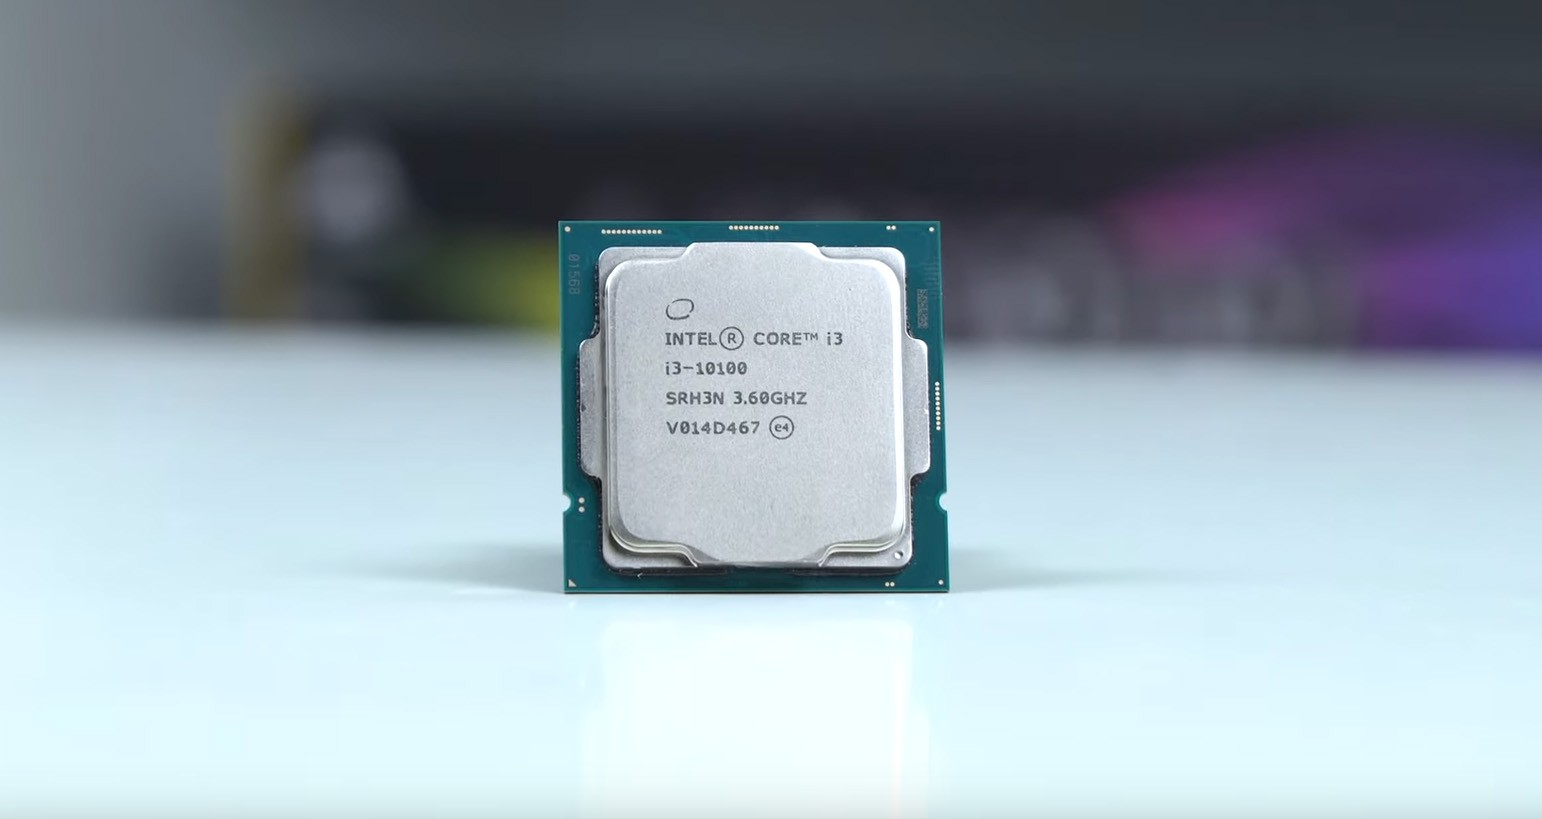 CPU Intel Core i3-10100 (3.6GHz turbo up to 4.3Ghz, 4 nhân 8 luồng, 6MB Cache, 65W, socket 1200)